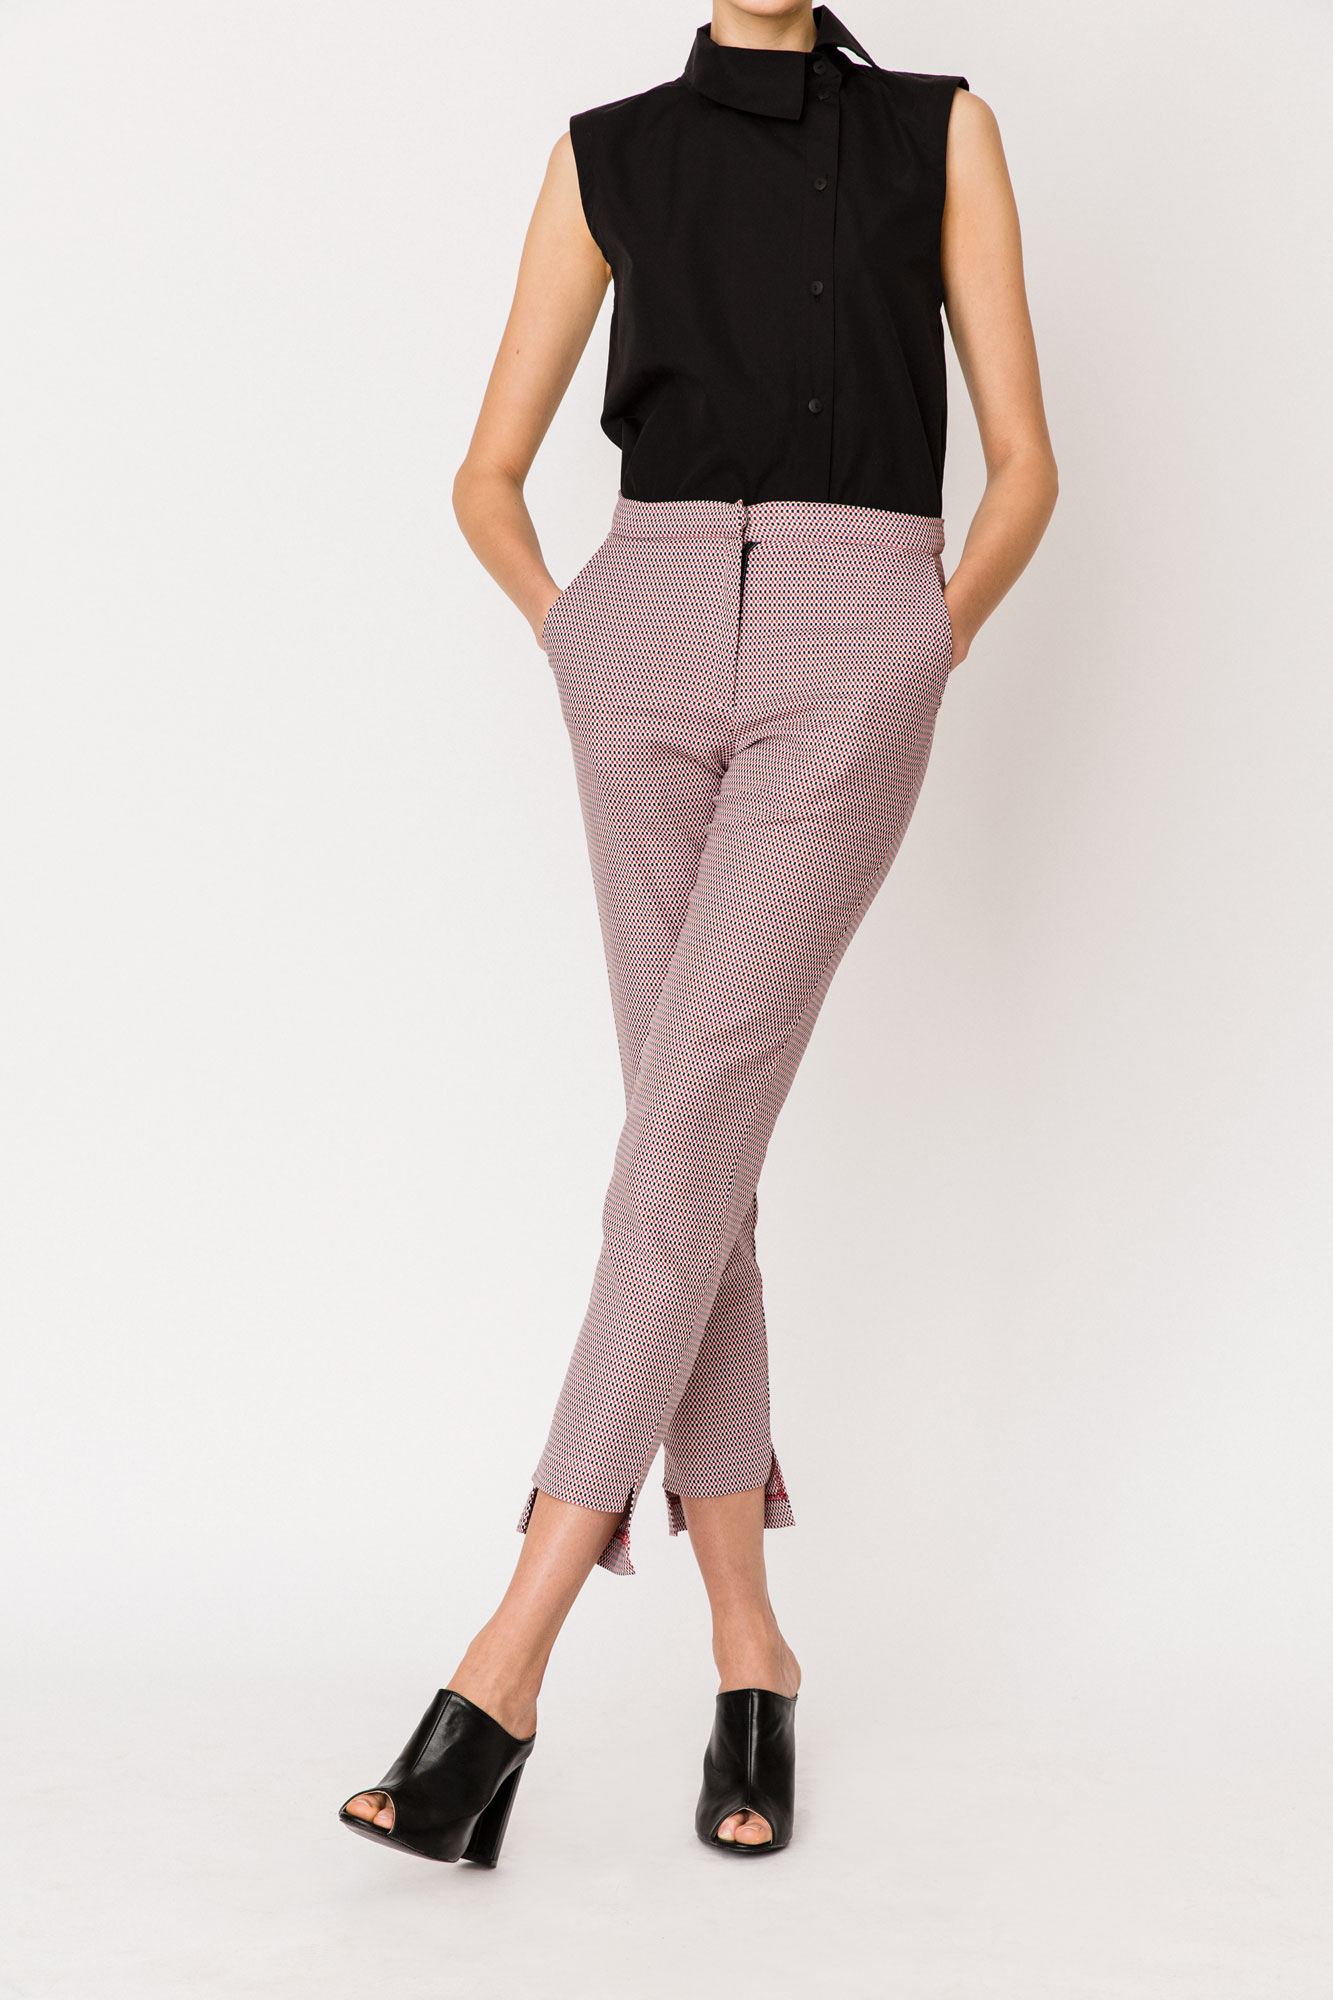 S18-03Pock_Trousers2